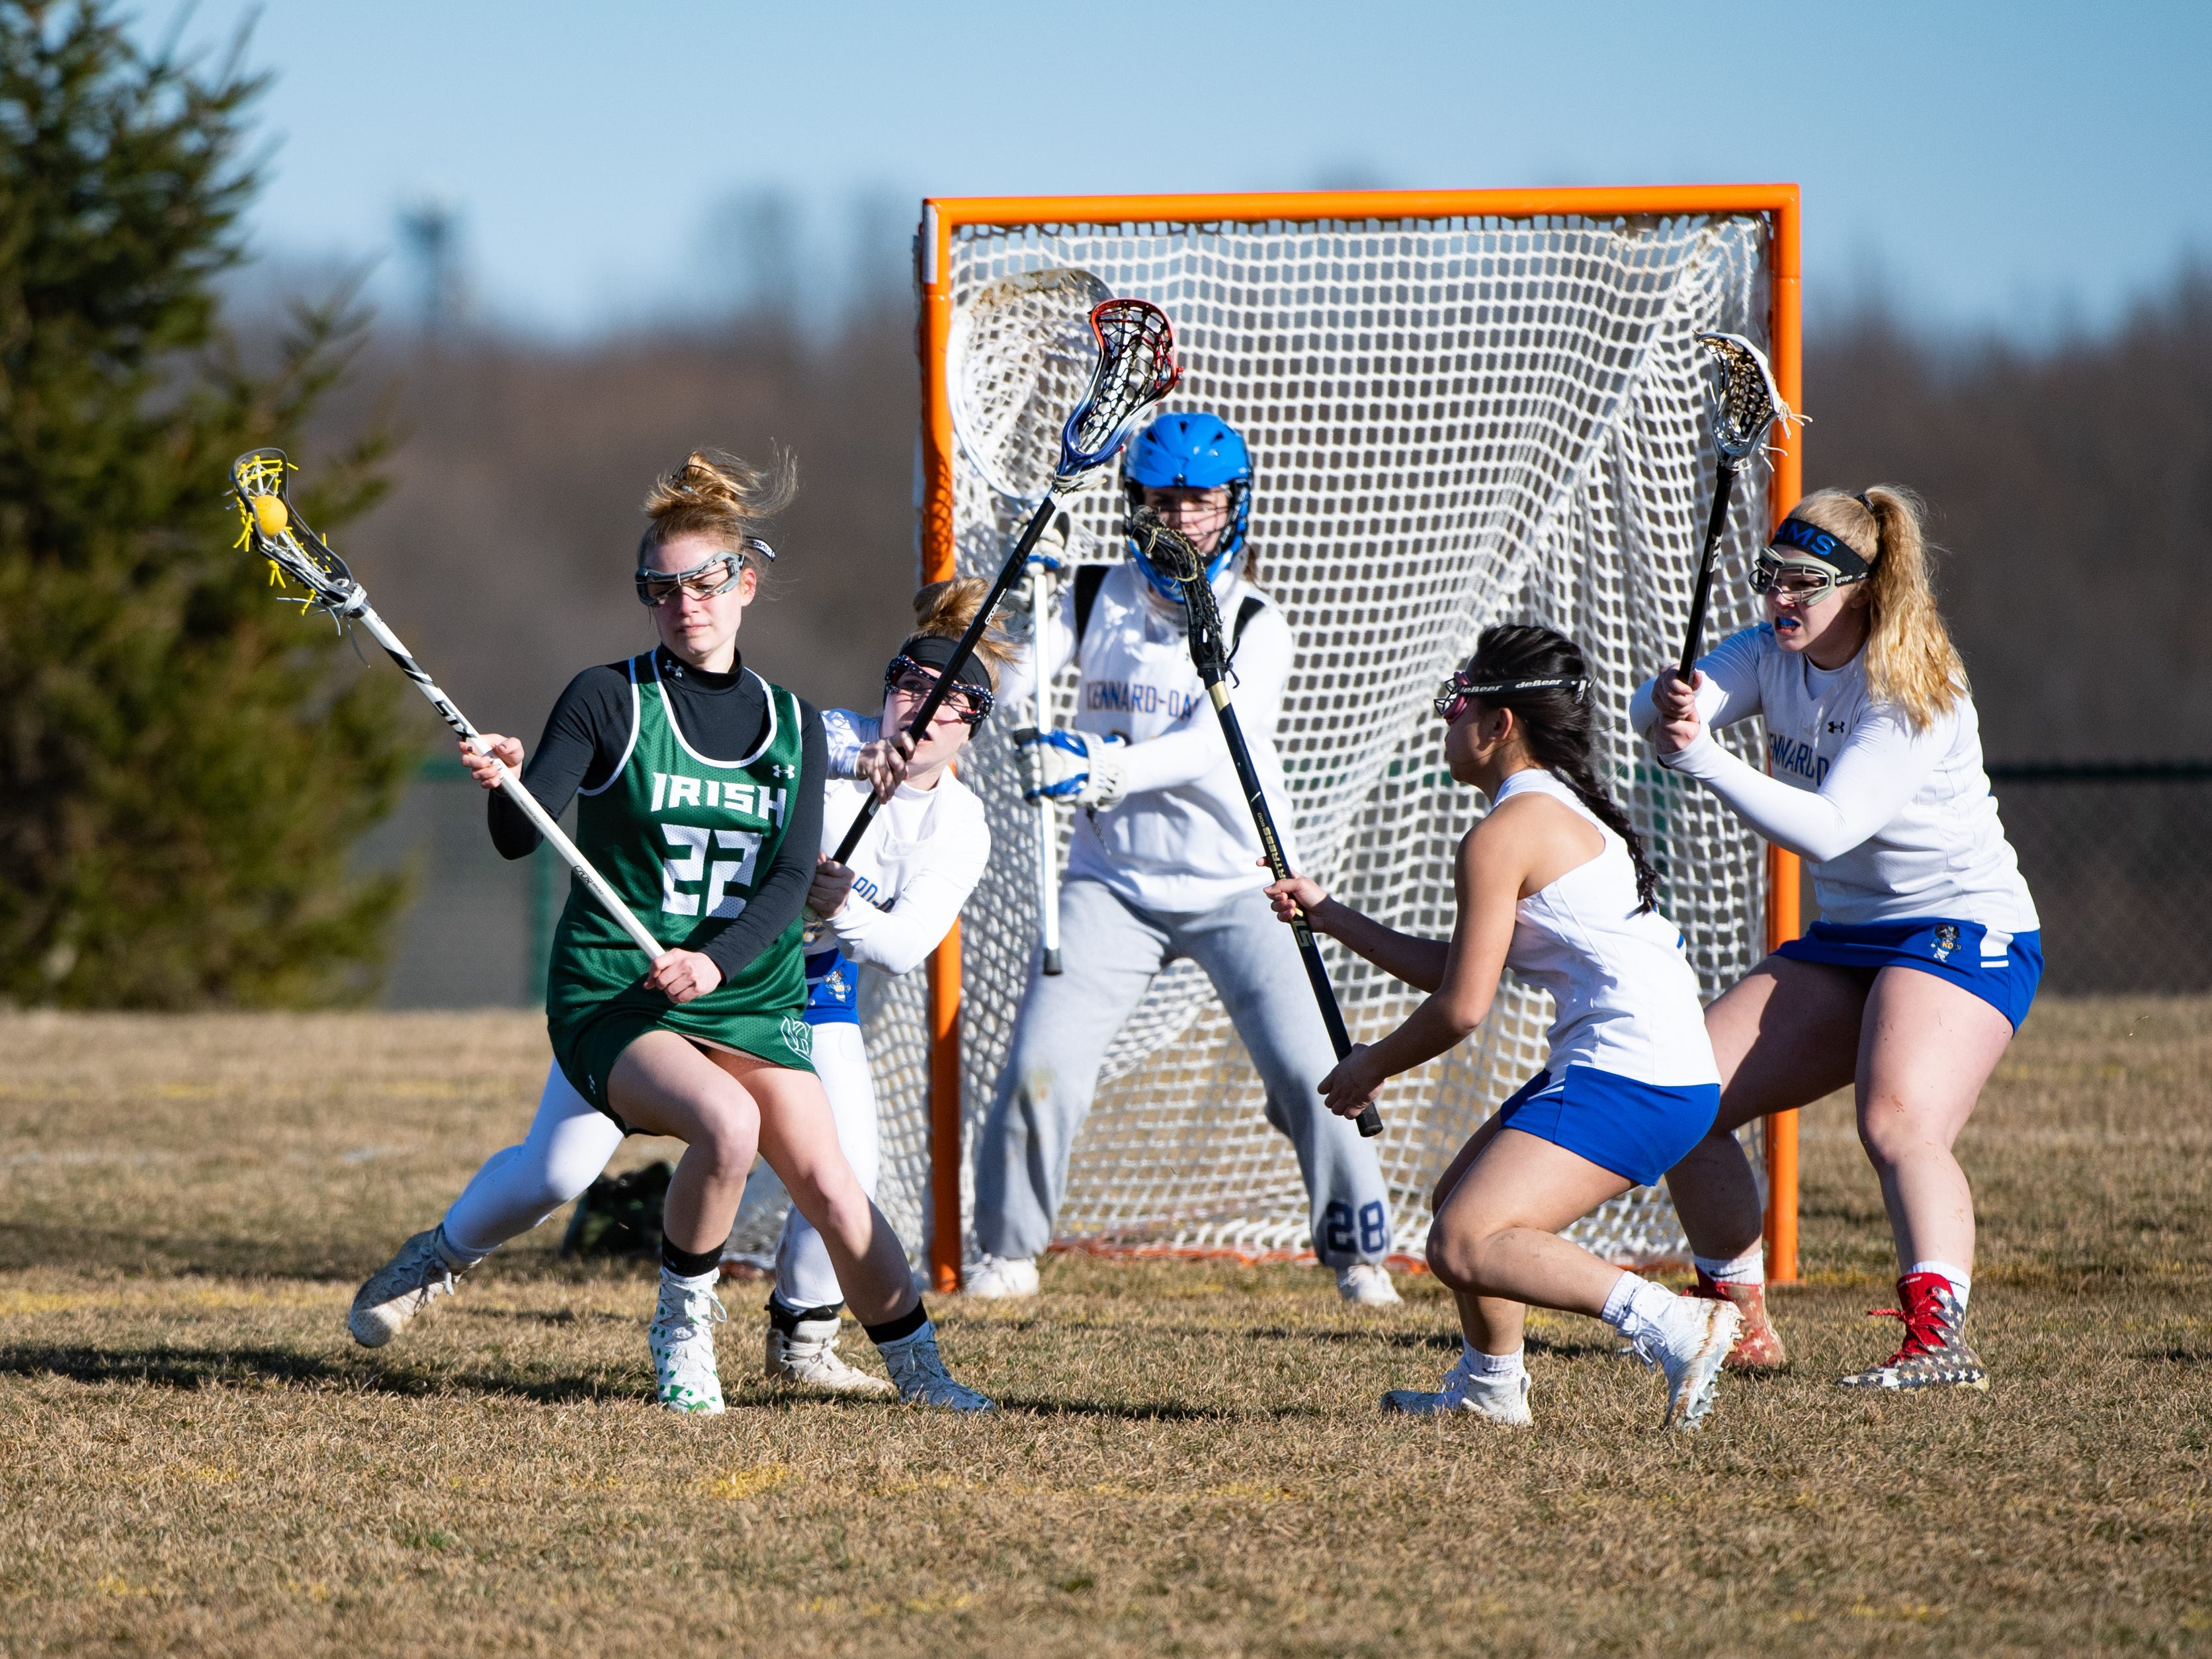 Natalie Neiman (22) spins off of the defense during the girls' lacrosse game between Kennard-Dale and York Catholic, March 26, 2019 at Kennard-Dale High School. The Fighting Irish defeated the Rams 10 to 9.